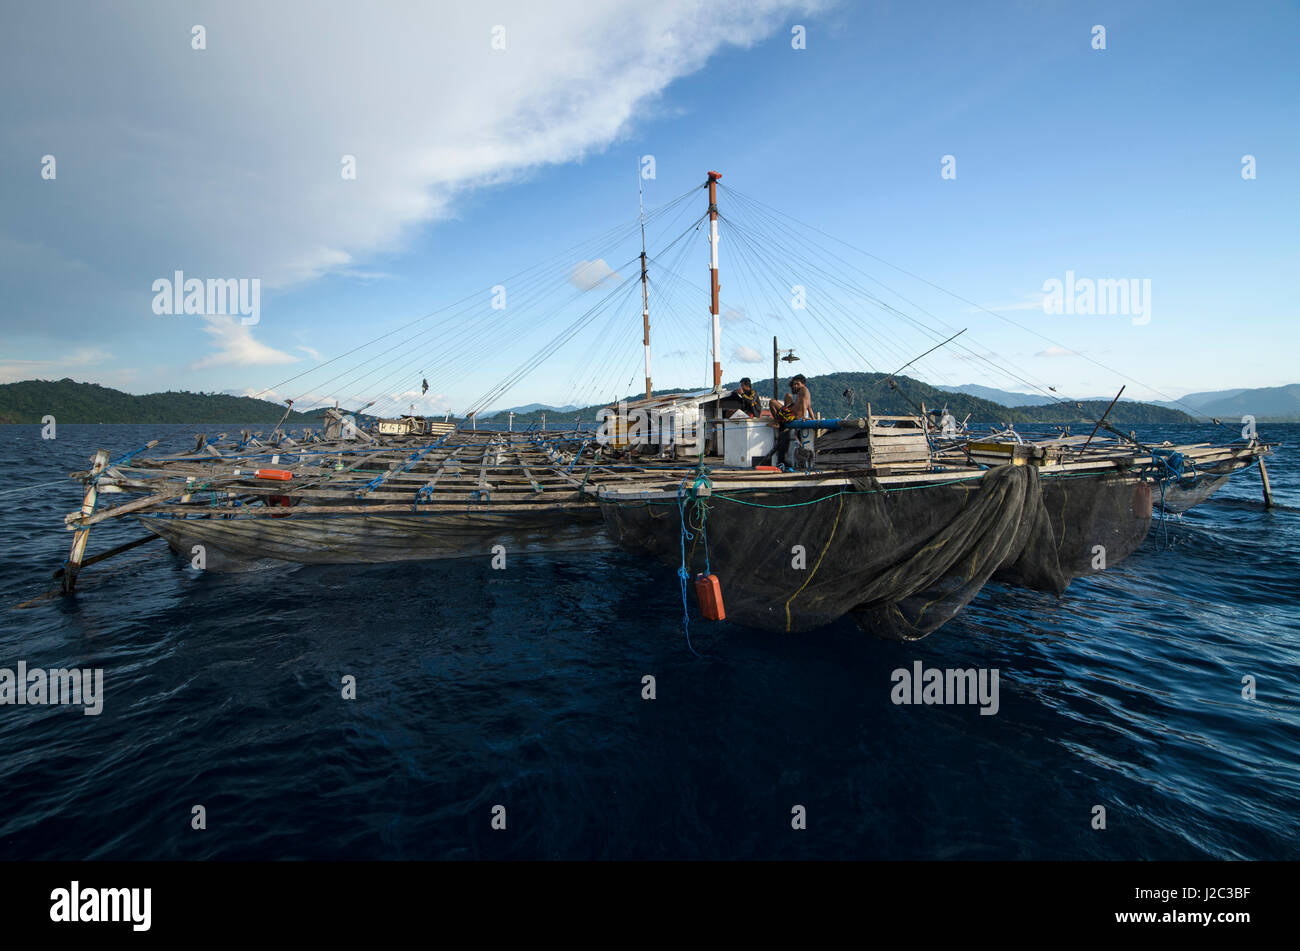 West indonesia stock photos west indonesia stock images for Floating fishing platform